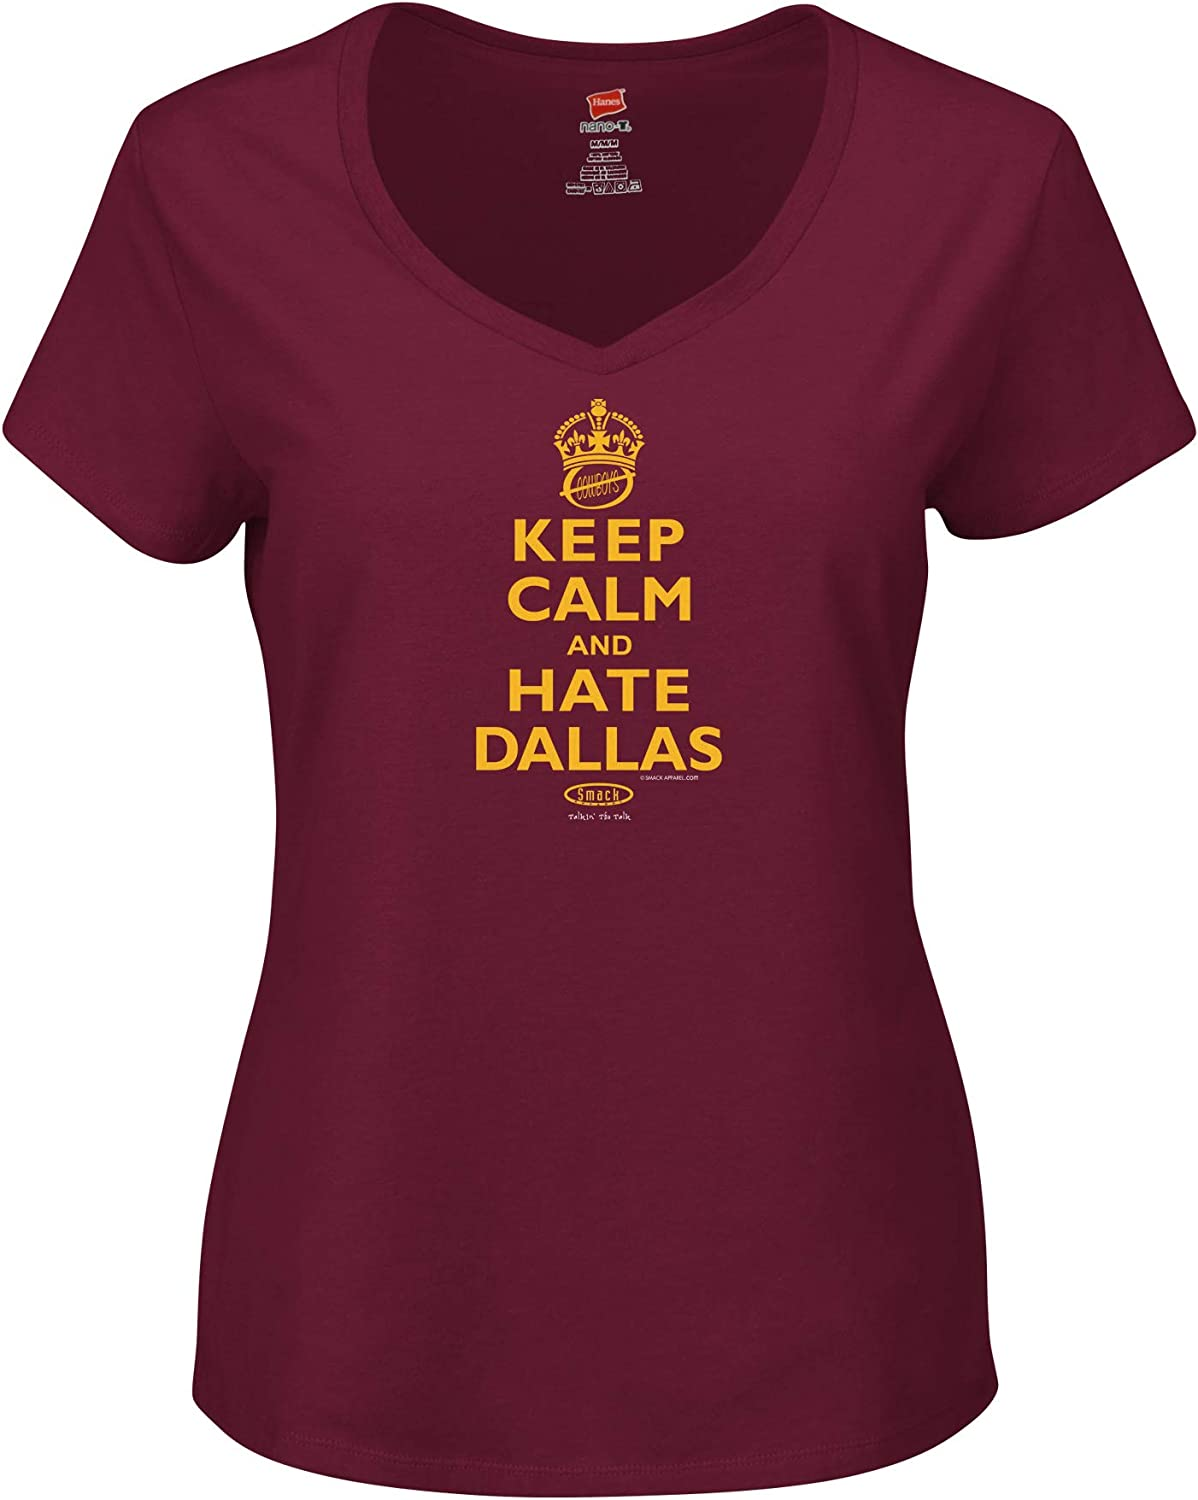 Keep Calm and Hate Dallas Sm-3X Maroon Ladies T-Shirt Smack Apparel Washington Football Fans